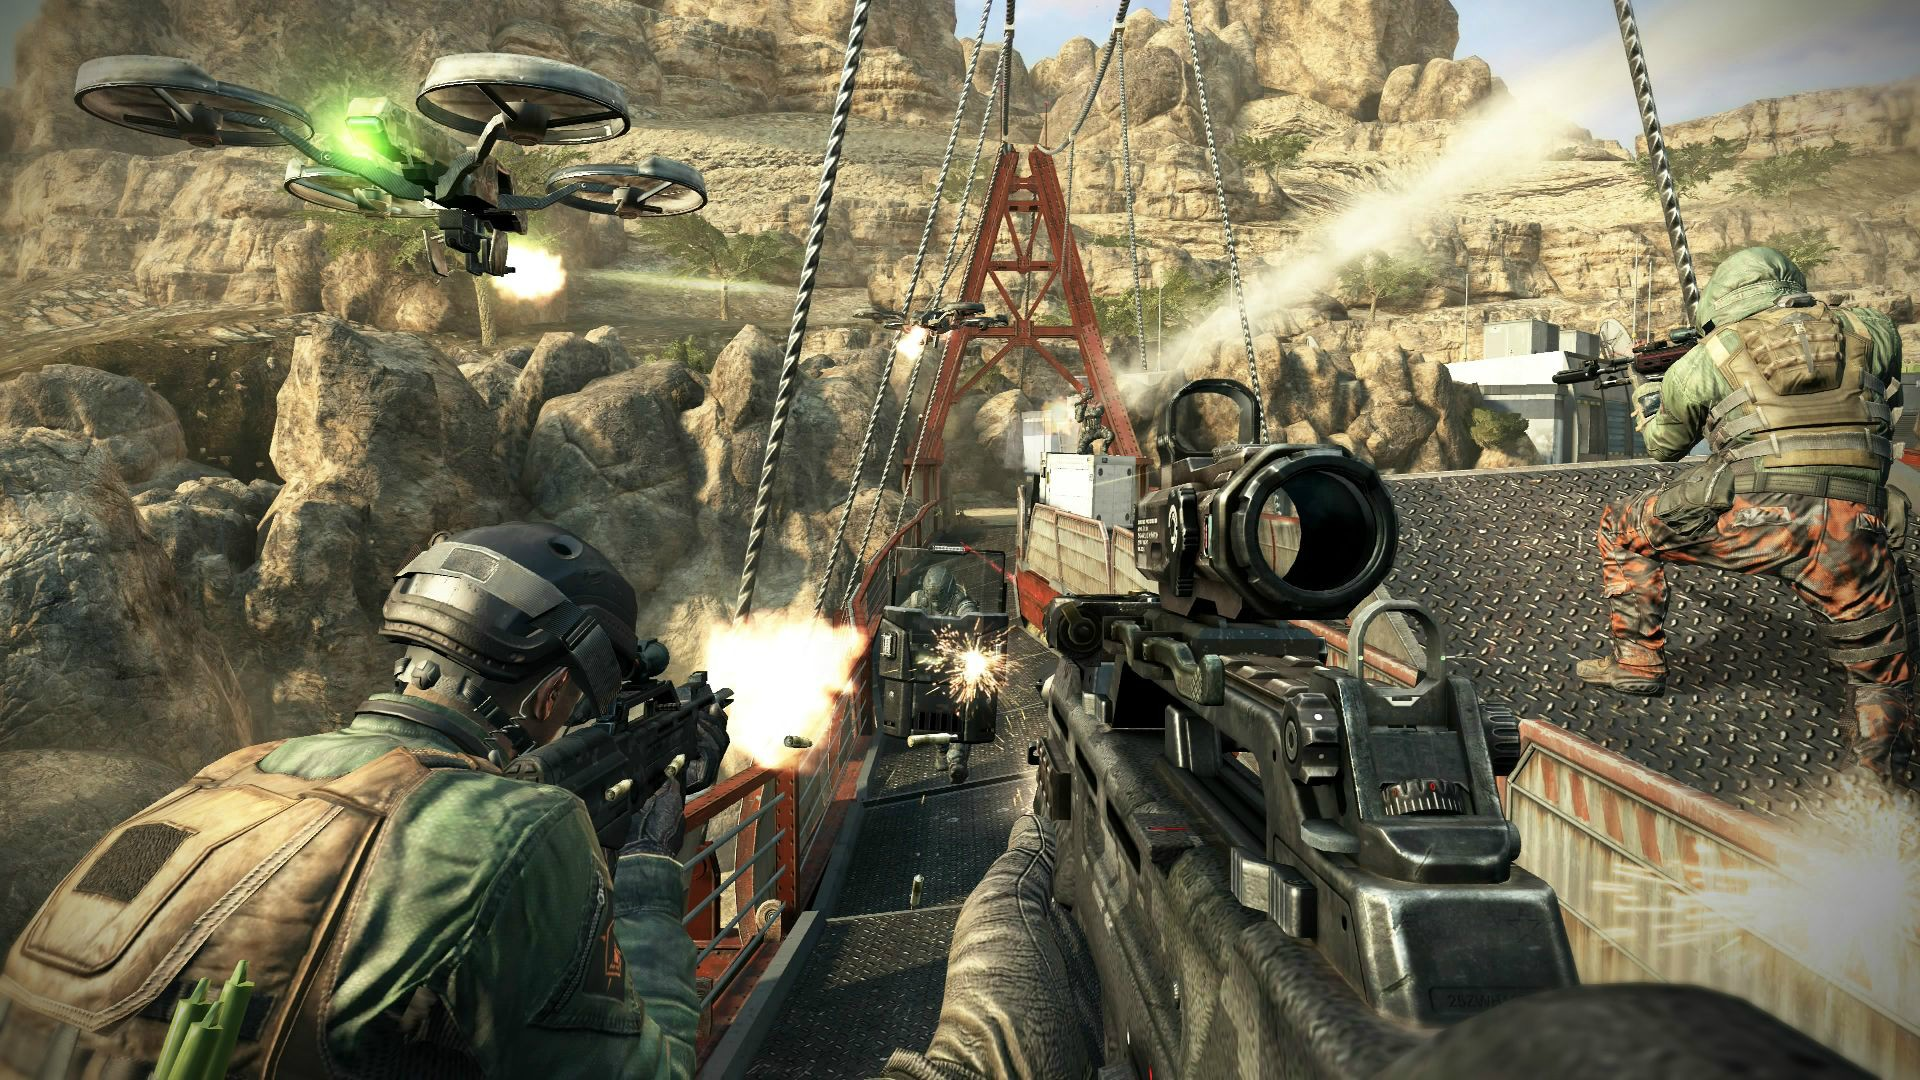 Call of duty black ops 3 version for pc gamesknit